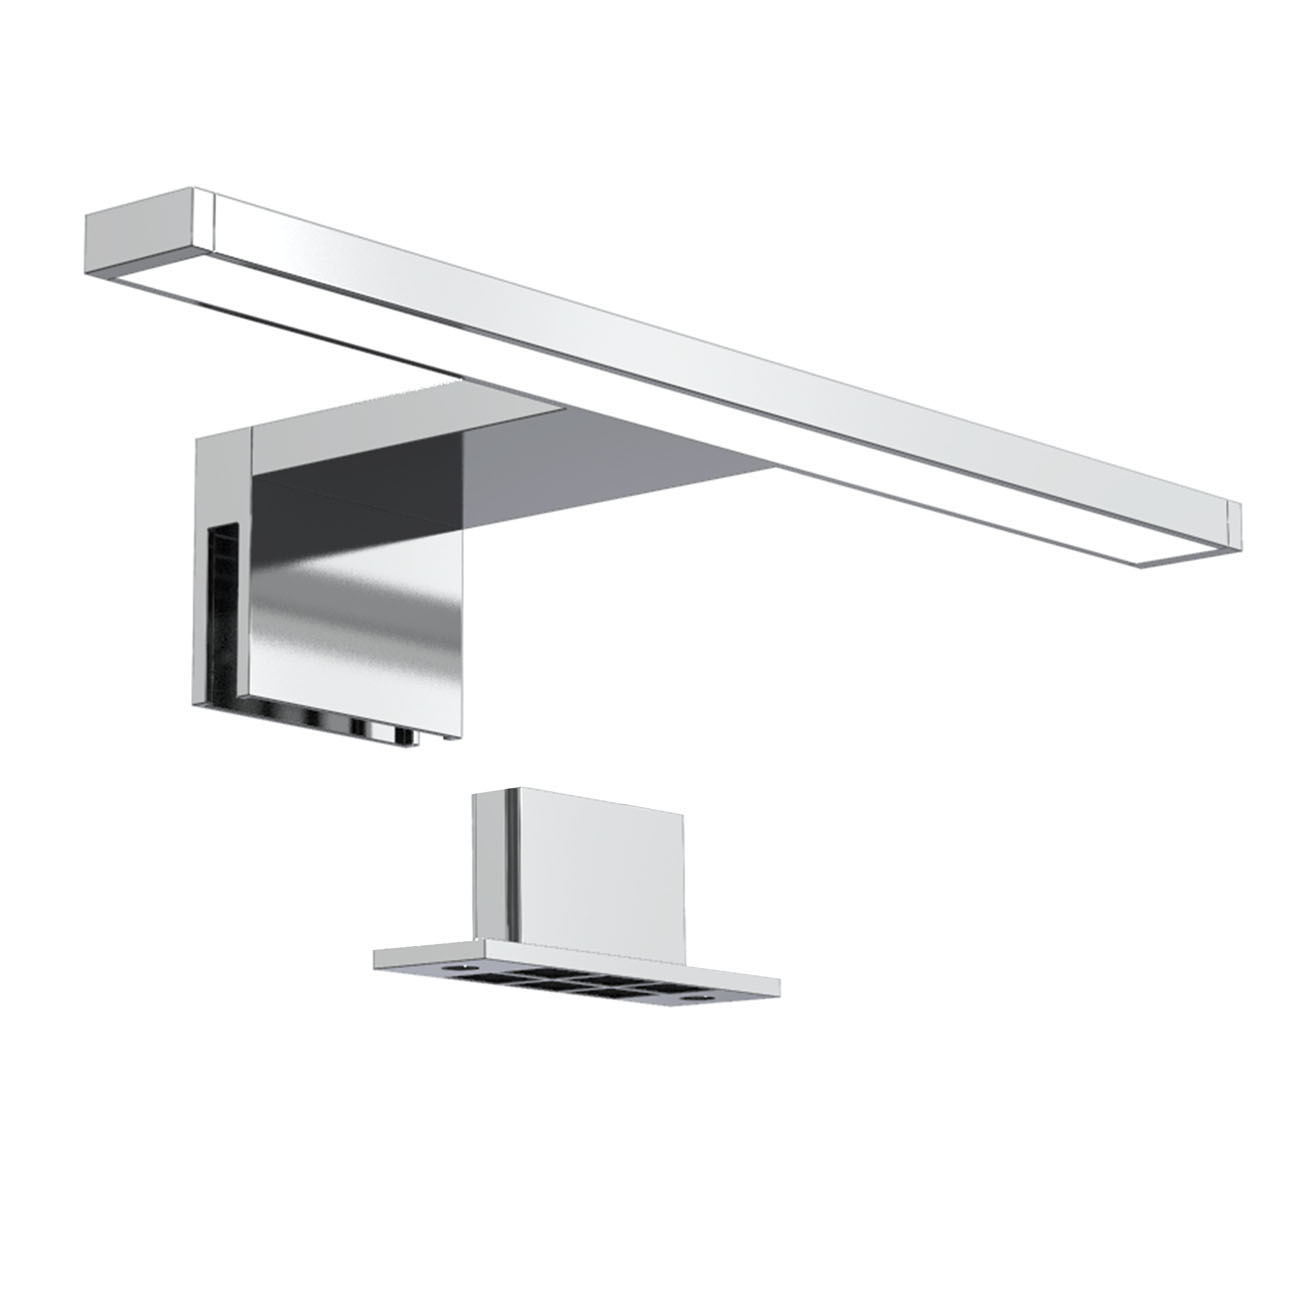 LED Spiegelleuchte Badlampe IP44 neutral-weiß S chrom - 1